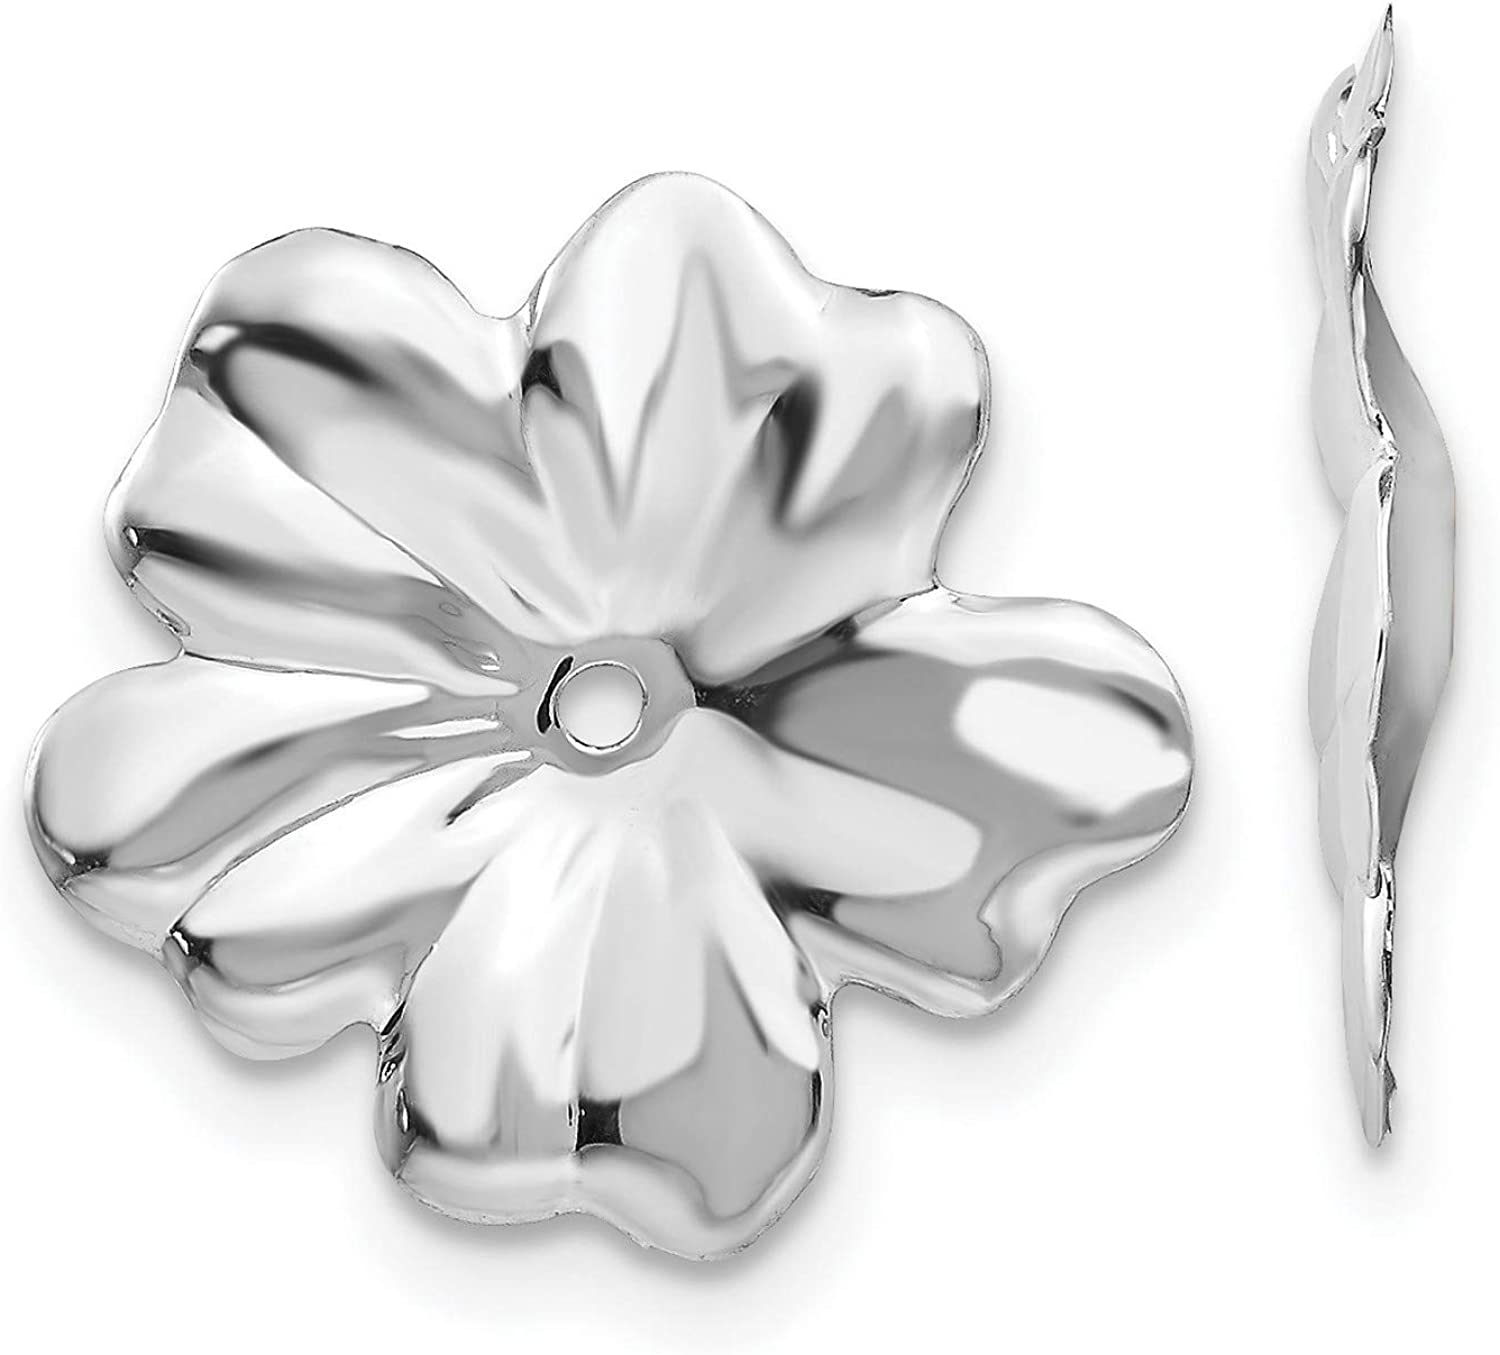 14k White Gold Floral Earring Jackets 11x11 mm